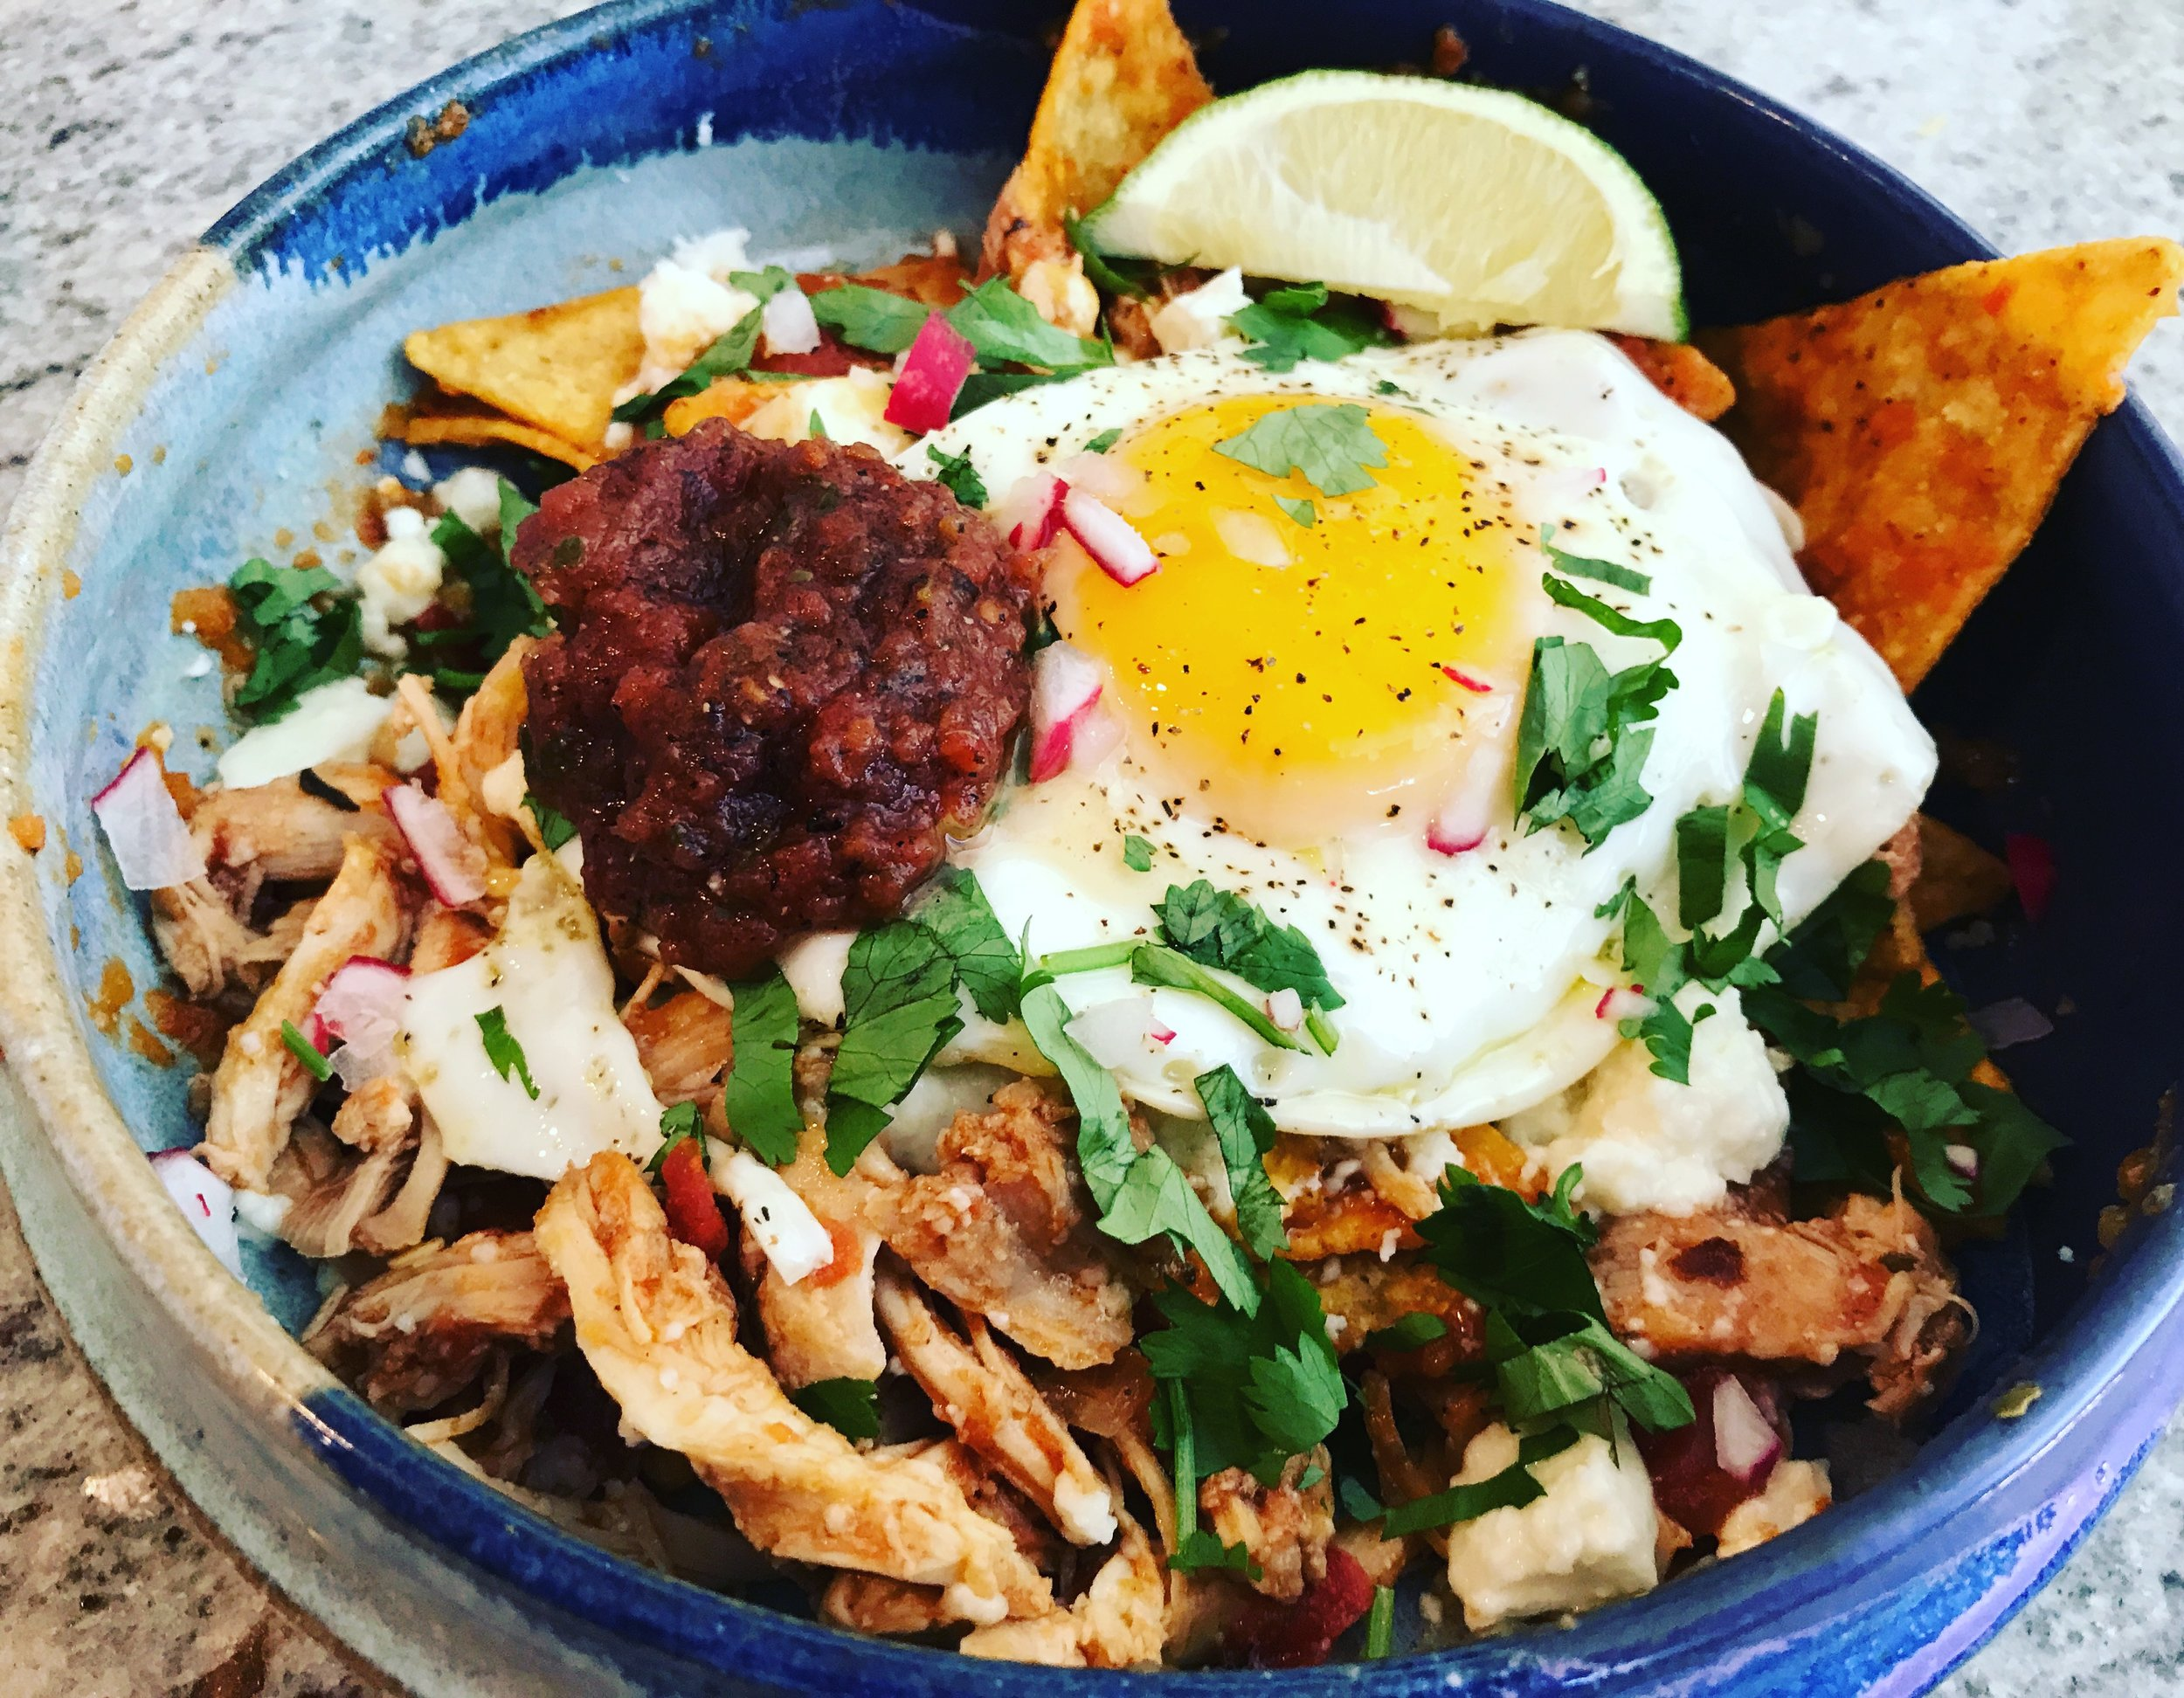 Chilaquiles - https://www.bonappetit.com/recipe/chilaquiles-with-fried-eggs